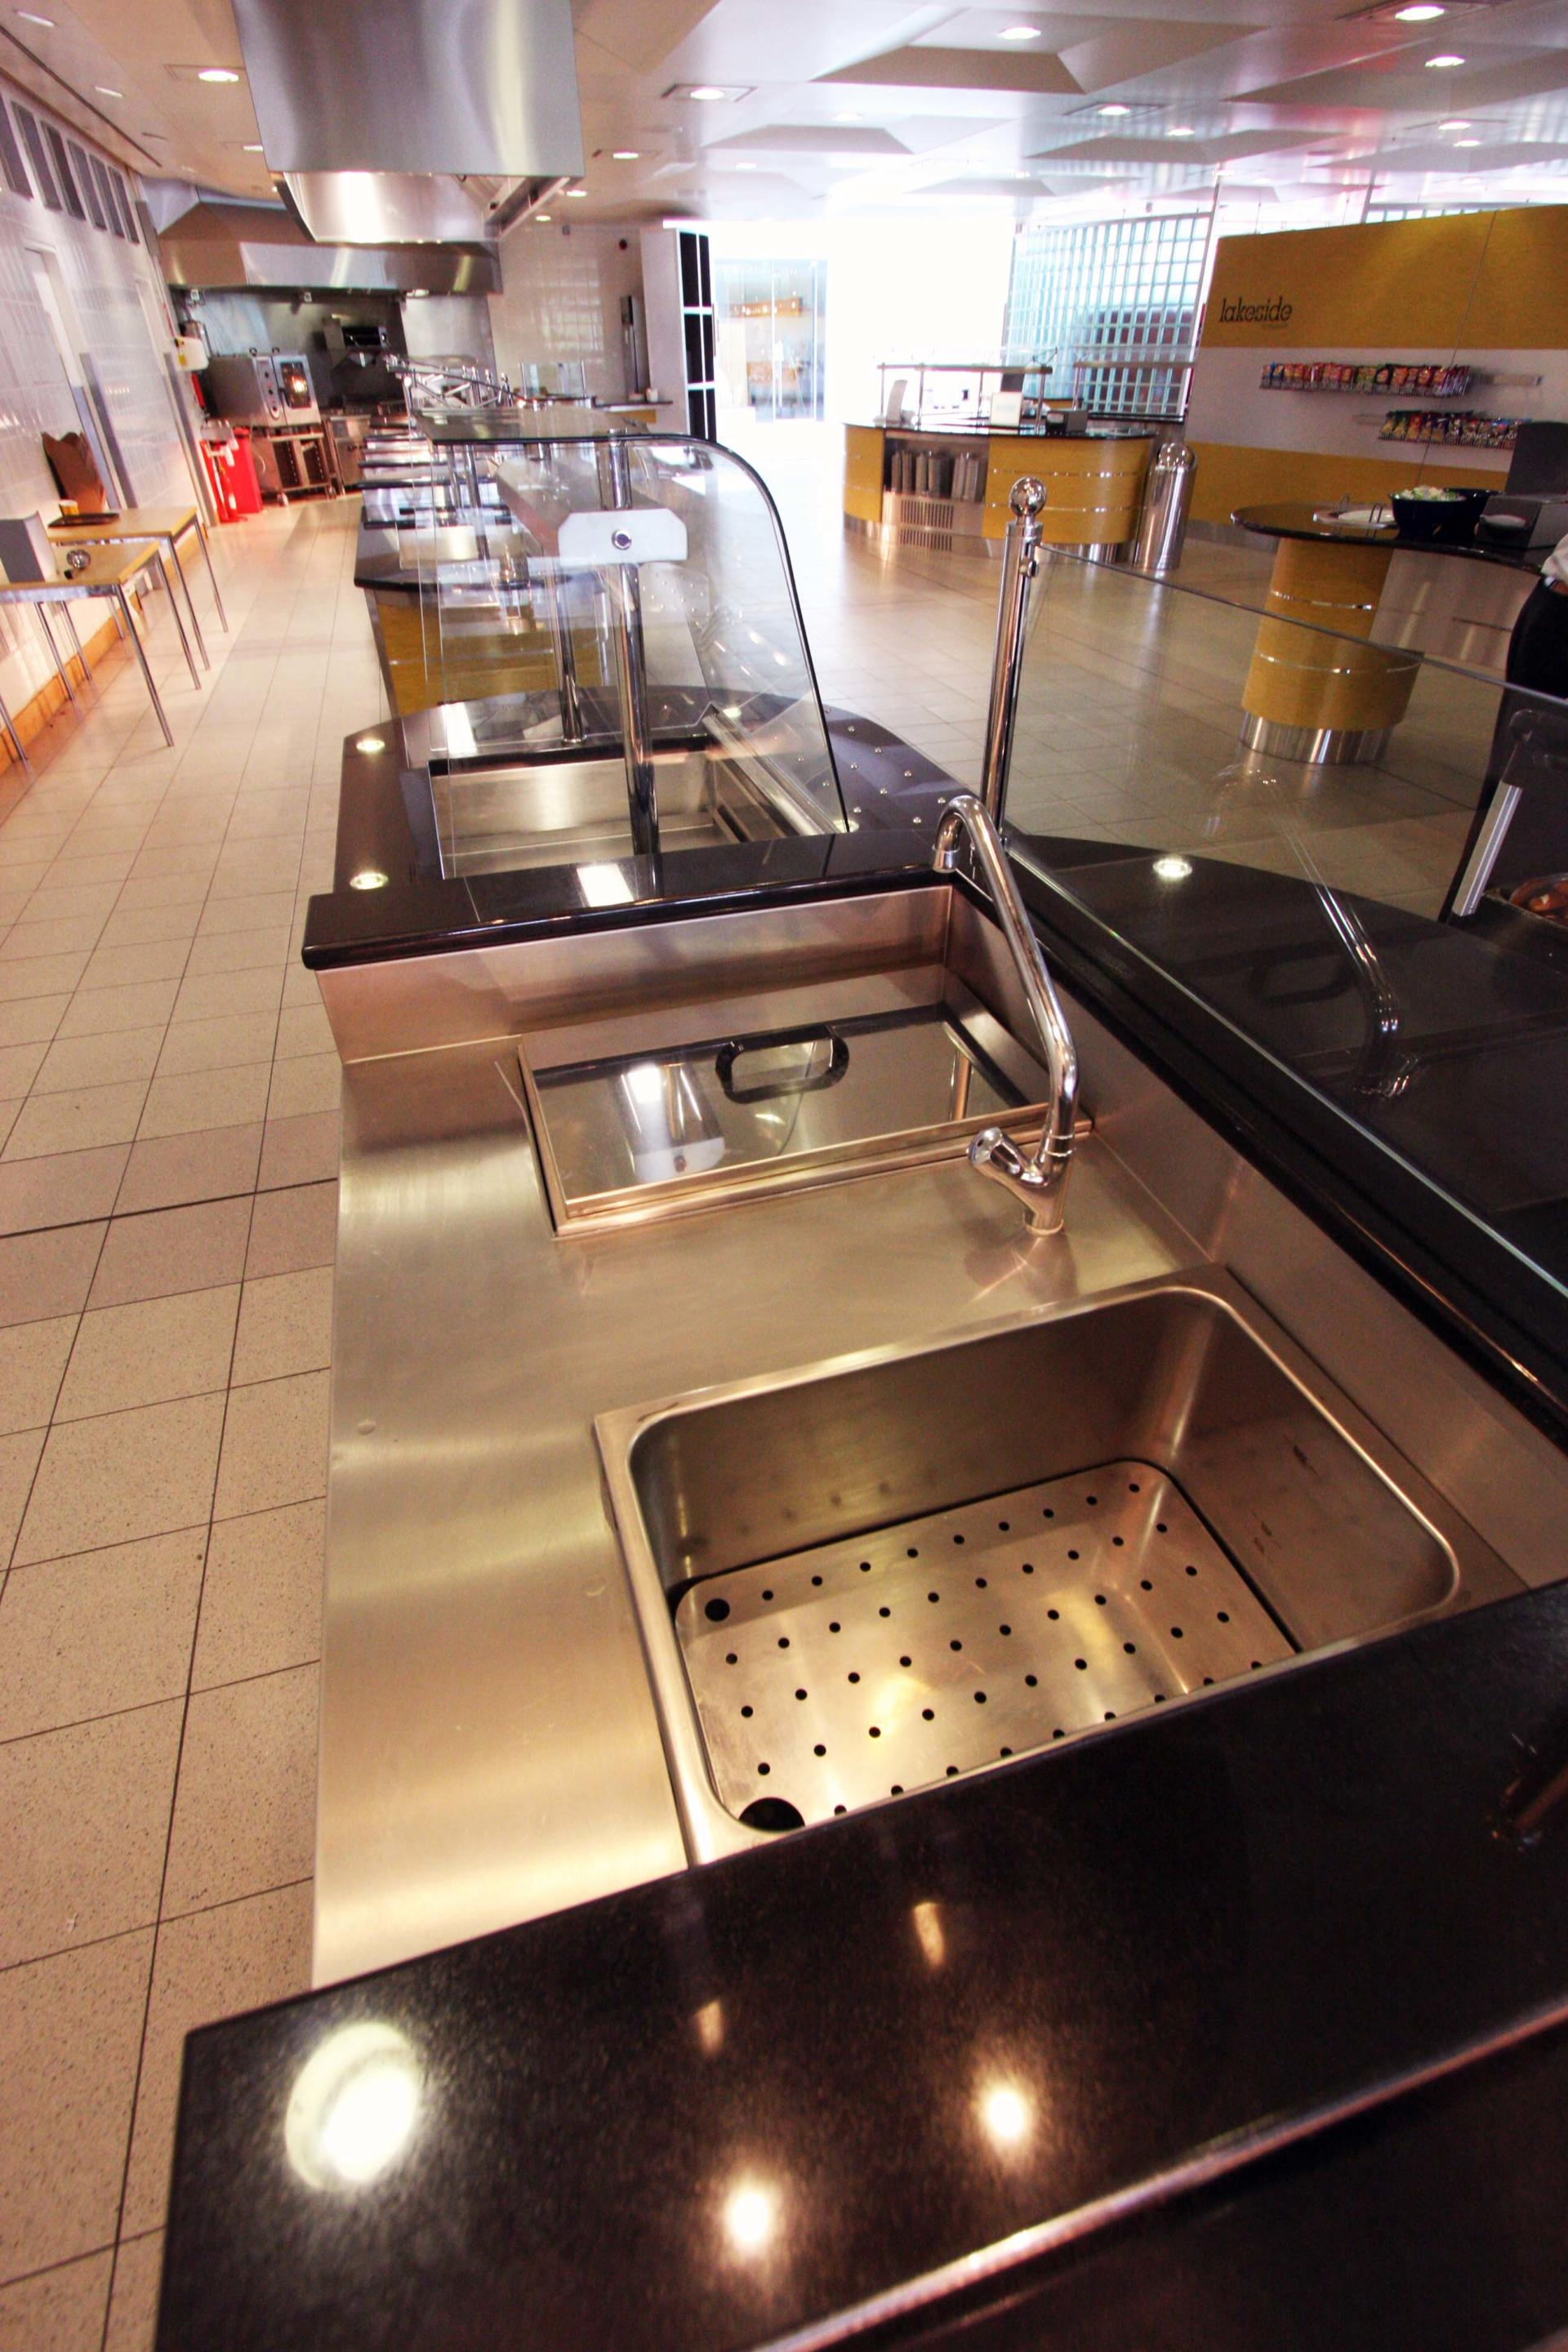 nationwide_swindon_staff restaurant_servery (5)